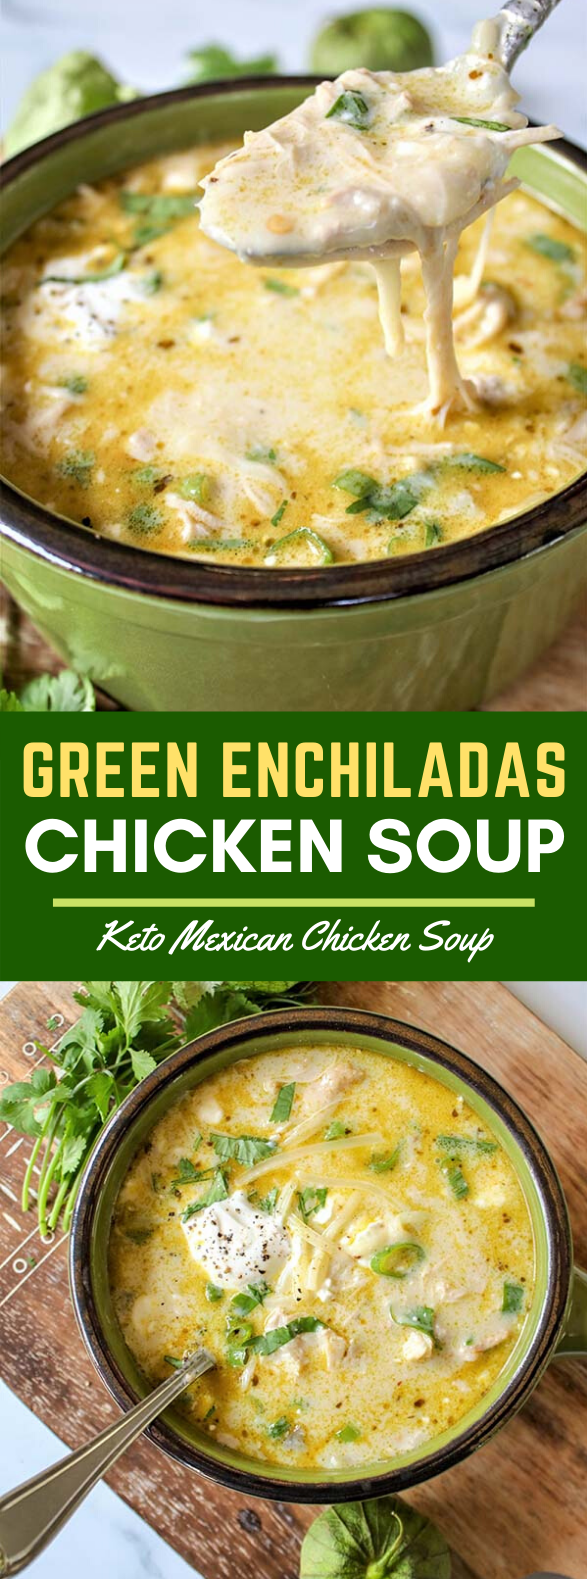 GREEN ENCHILADAS CHICKEN SOUP (KETO SLOW COOKER MEXICAN SOUP) #healthydinner #diet